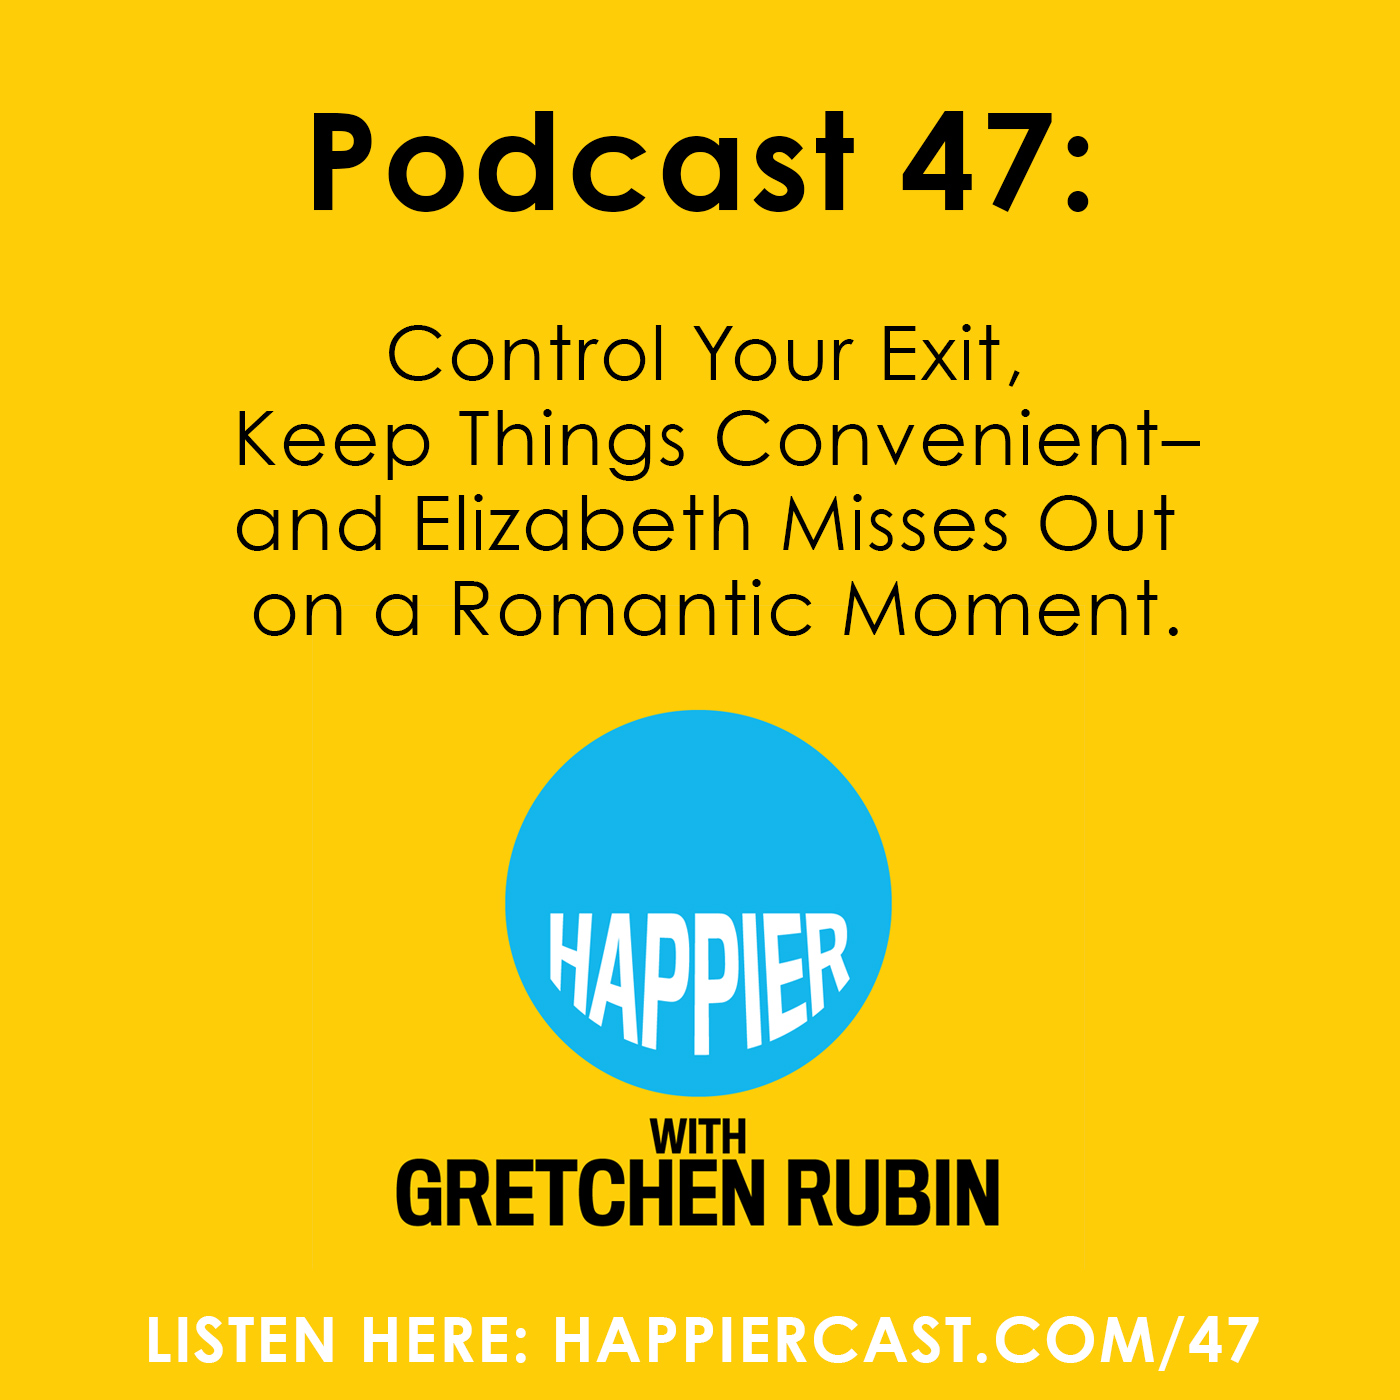 Happier with Gretchen Rubin #47 - Listen at GretchenRubin.com